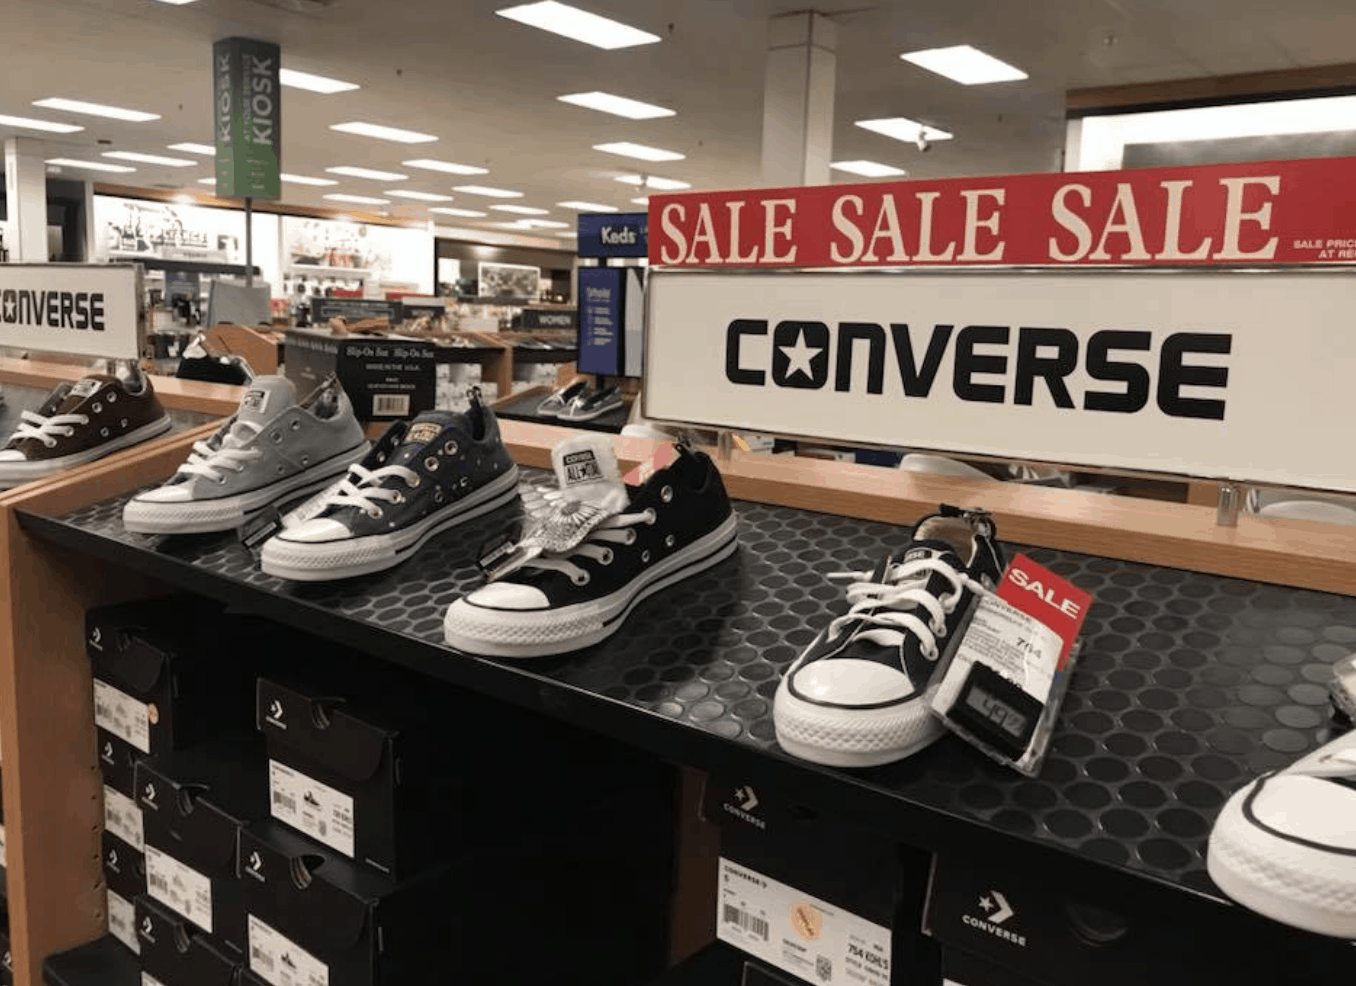 Converse Chuck Taylor s ONLY  27 Shipped! (Use Your Kohl s Cash ... 18c72a67f